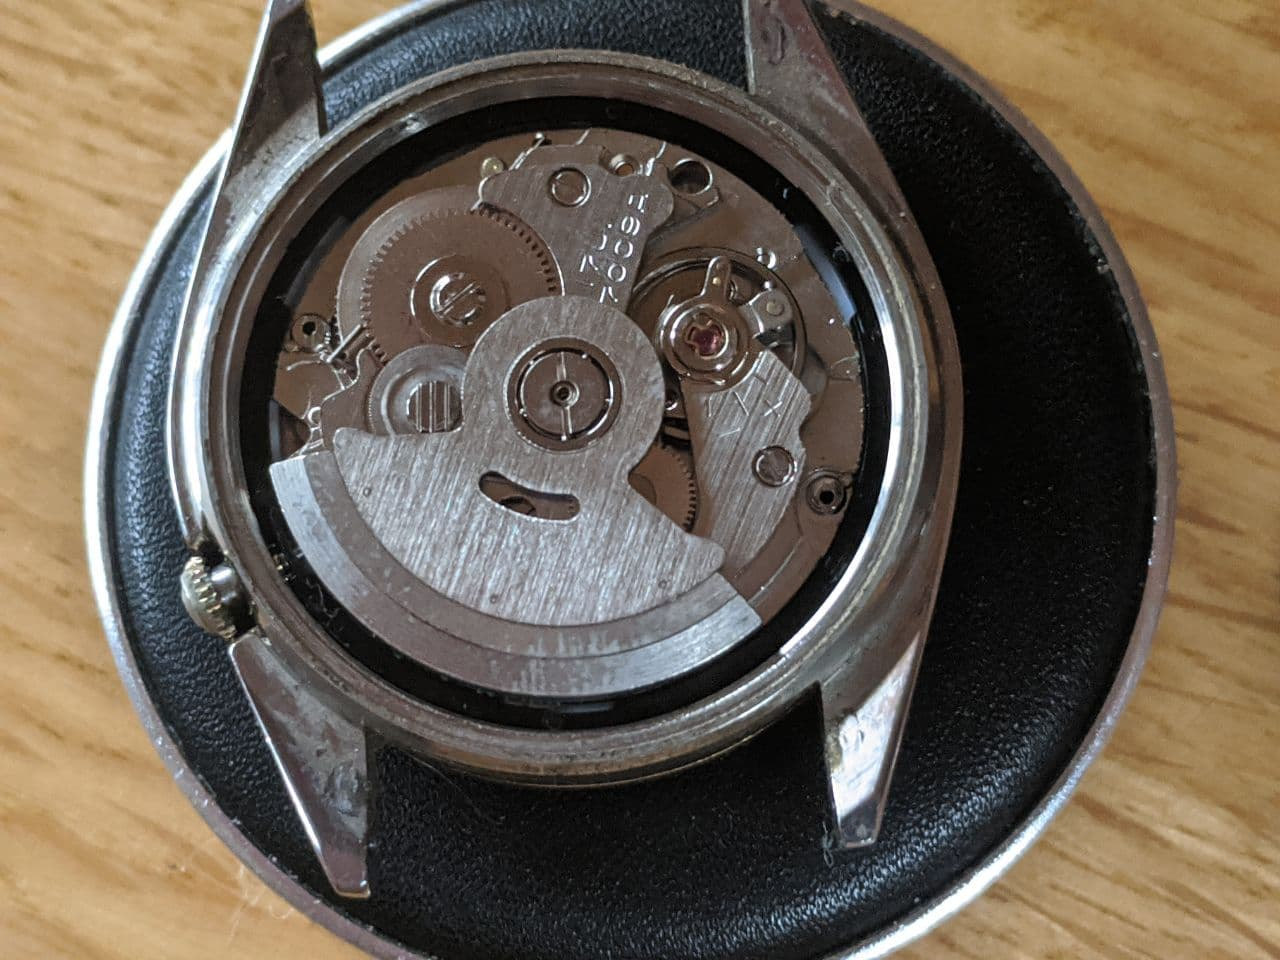 Watch Repair UK DateJust Watch movement Seiko 7009 in Case open back for repair